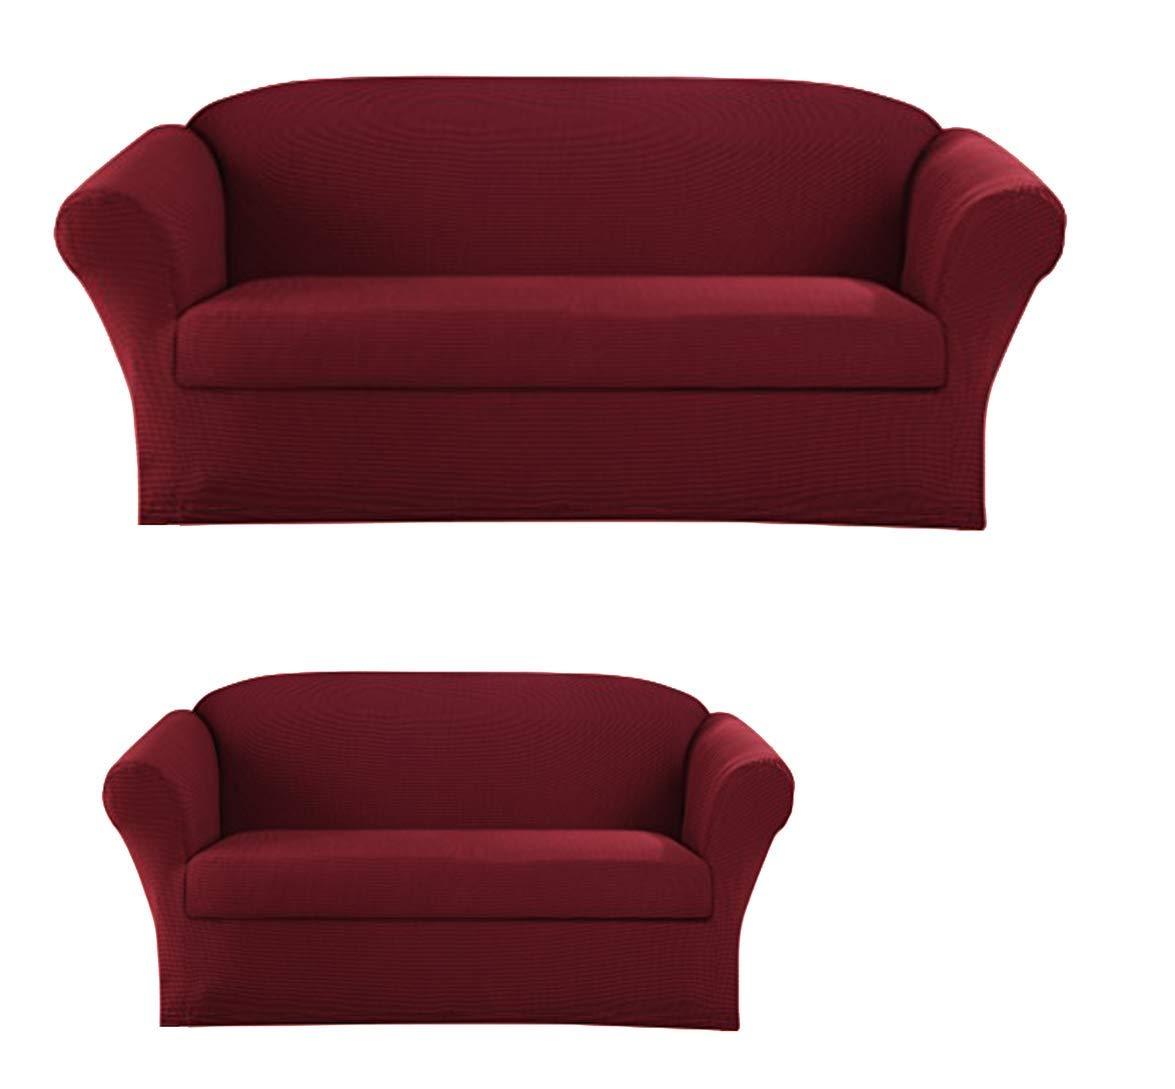 2-Piece SlipCover Set for Sofa Loveseat Couch, Form fit Stretch & Wrinkle Free, Furniture Protector Cover Set for 3/2 Cushions, Polyester Spandex, 2pc Slipcover Set, Slipcover 2pc Burgundy by Sapphire Home